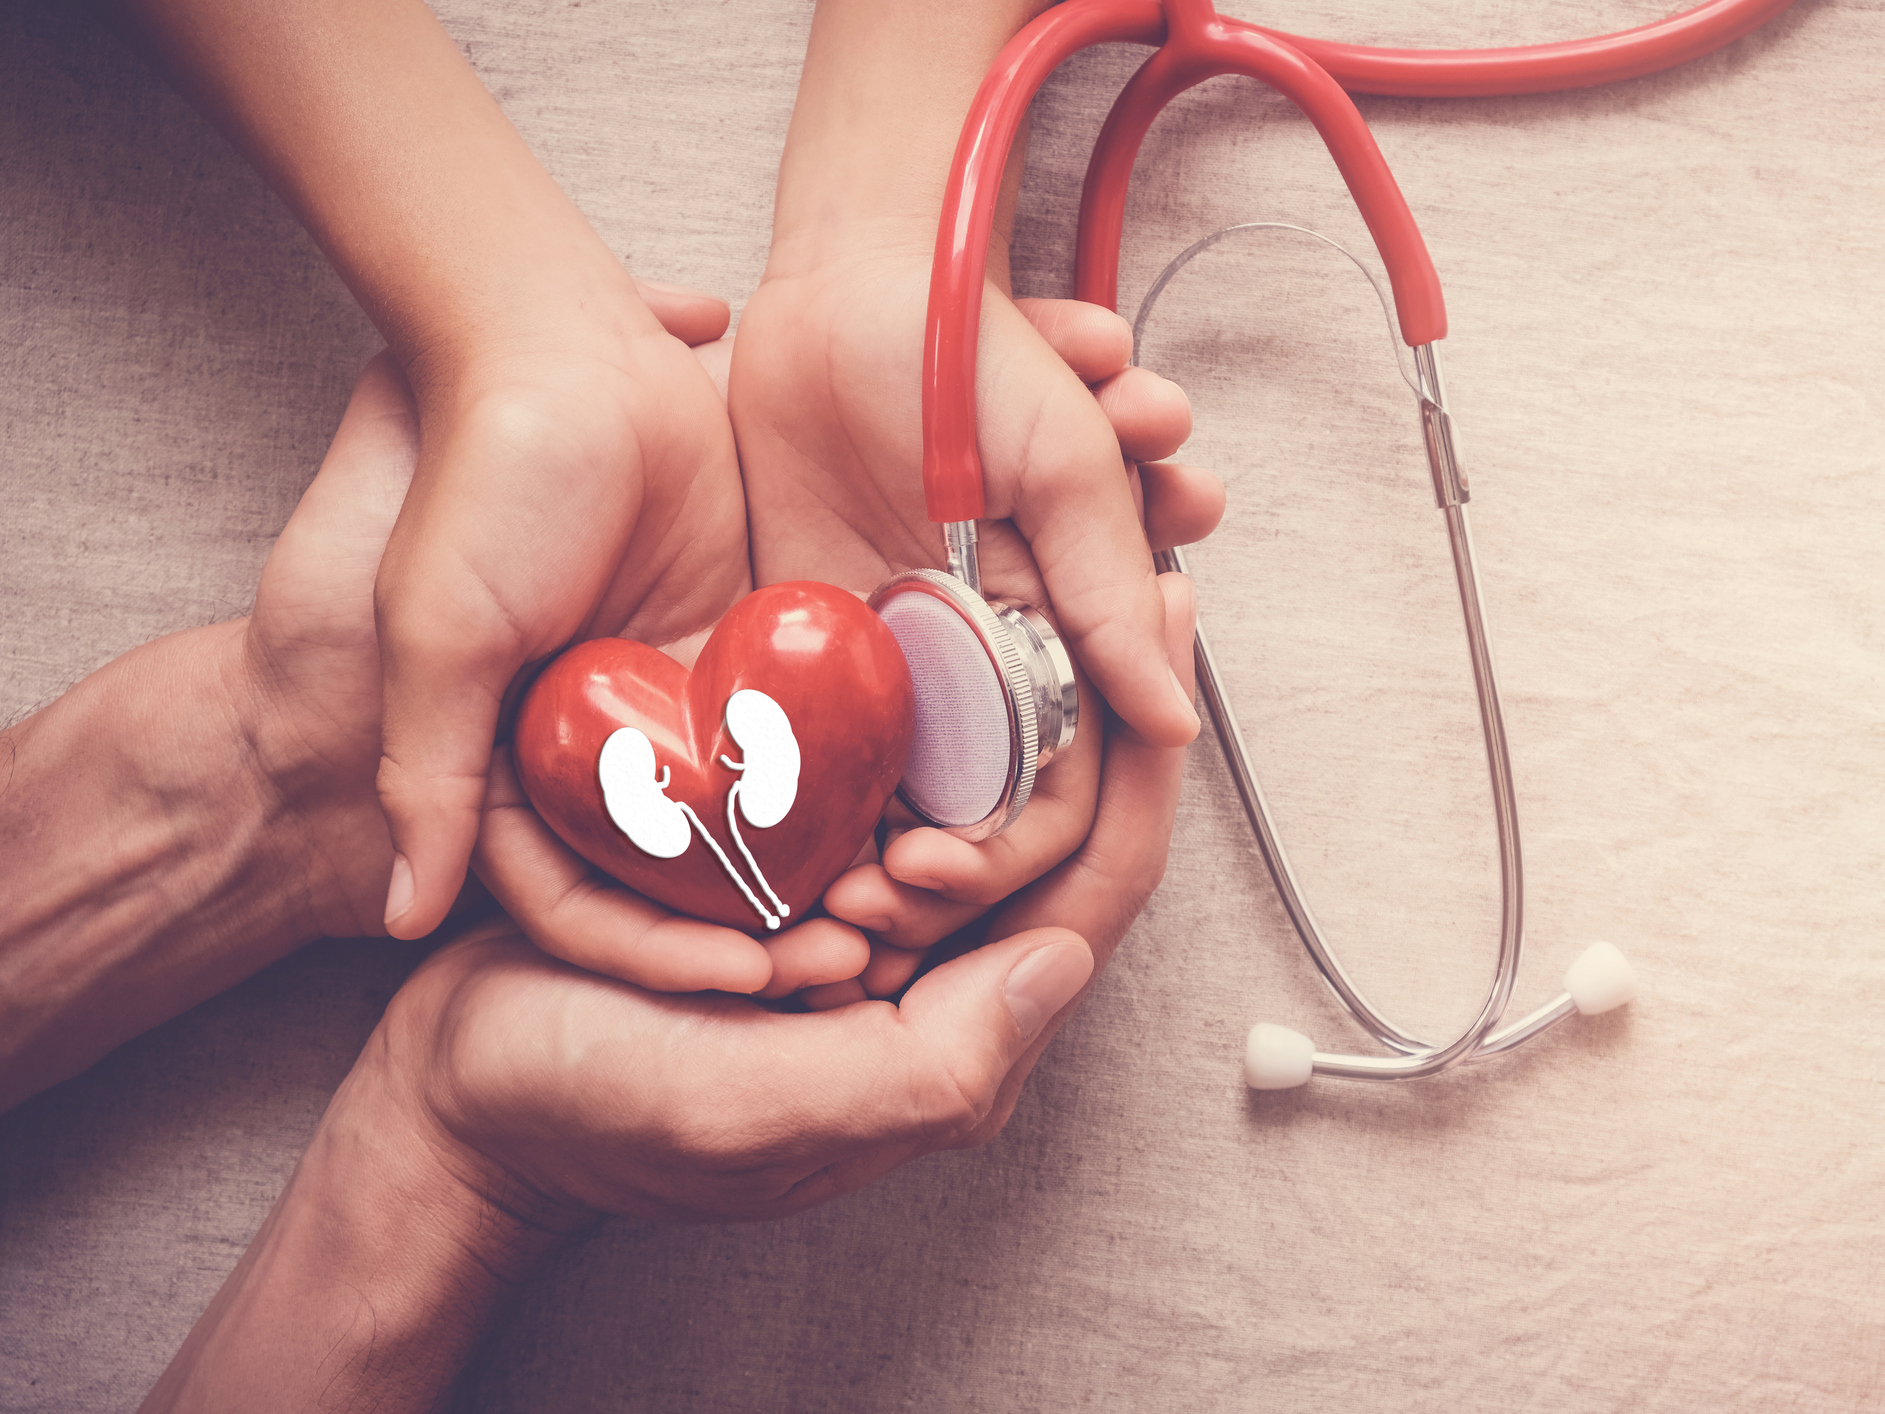 Chelation therapy, kidney disease, and heart disease connected